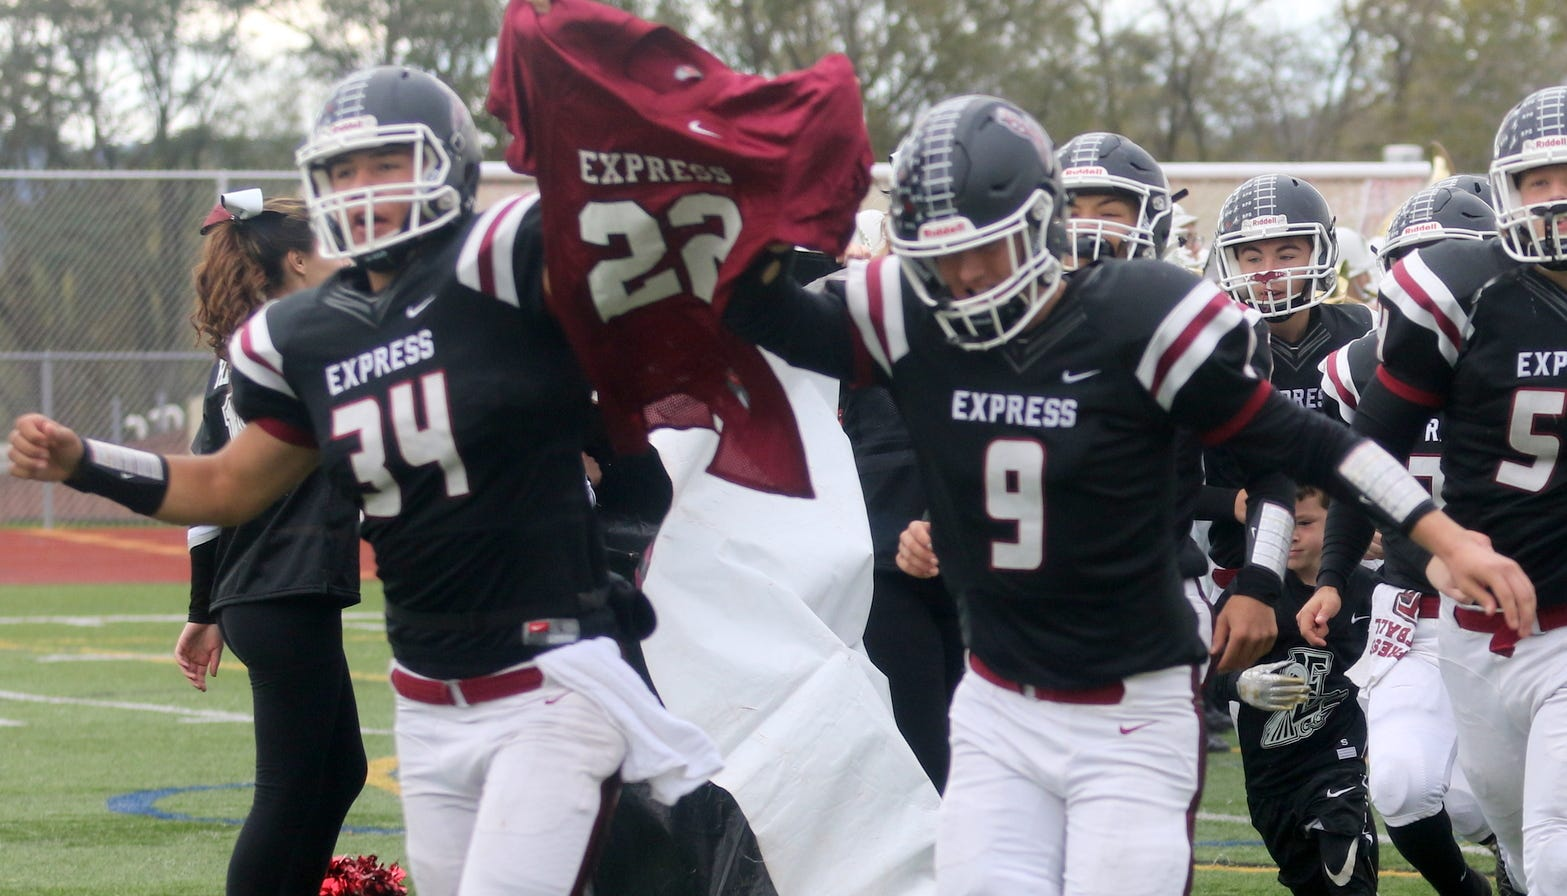 Elmira seniors Devin Hoskins (34) and Zack Middaugh (9) lead the team onto the field while carrying the jersey of former Express all-state player Eli Thomas on Oct. 20, 2018 against Vestal at Ernie Davis Academy. Thomas, who now plays at UConn, suffered a stroke Oct. 10.